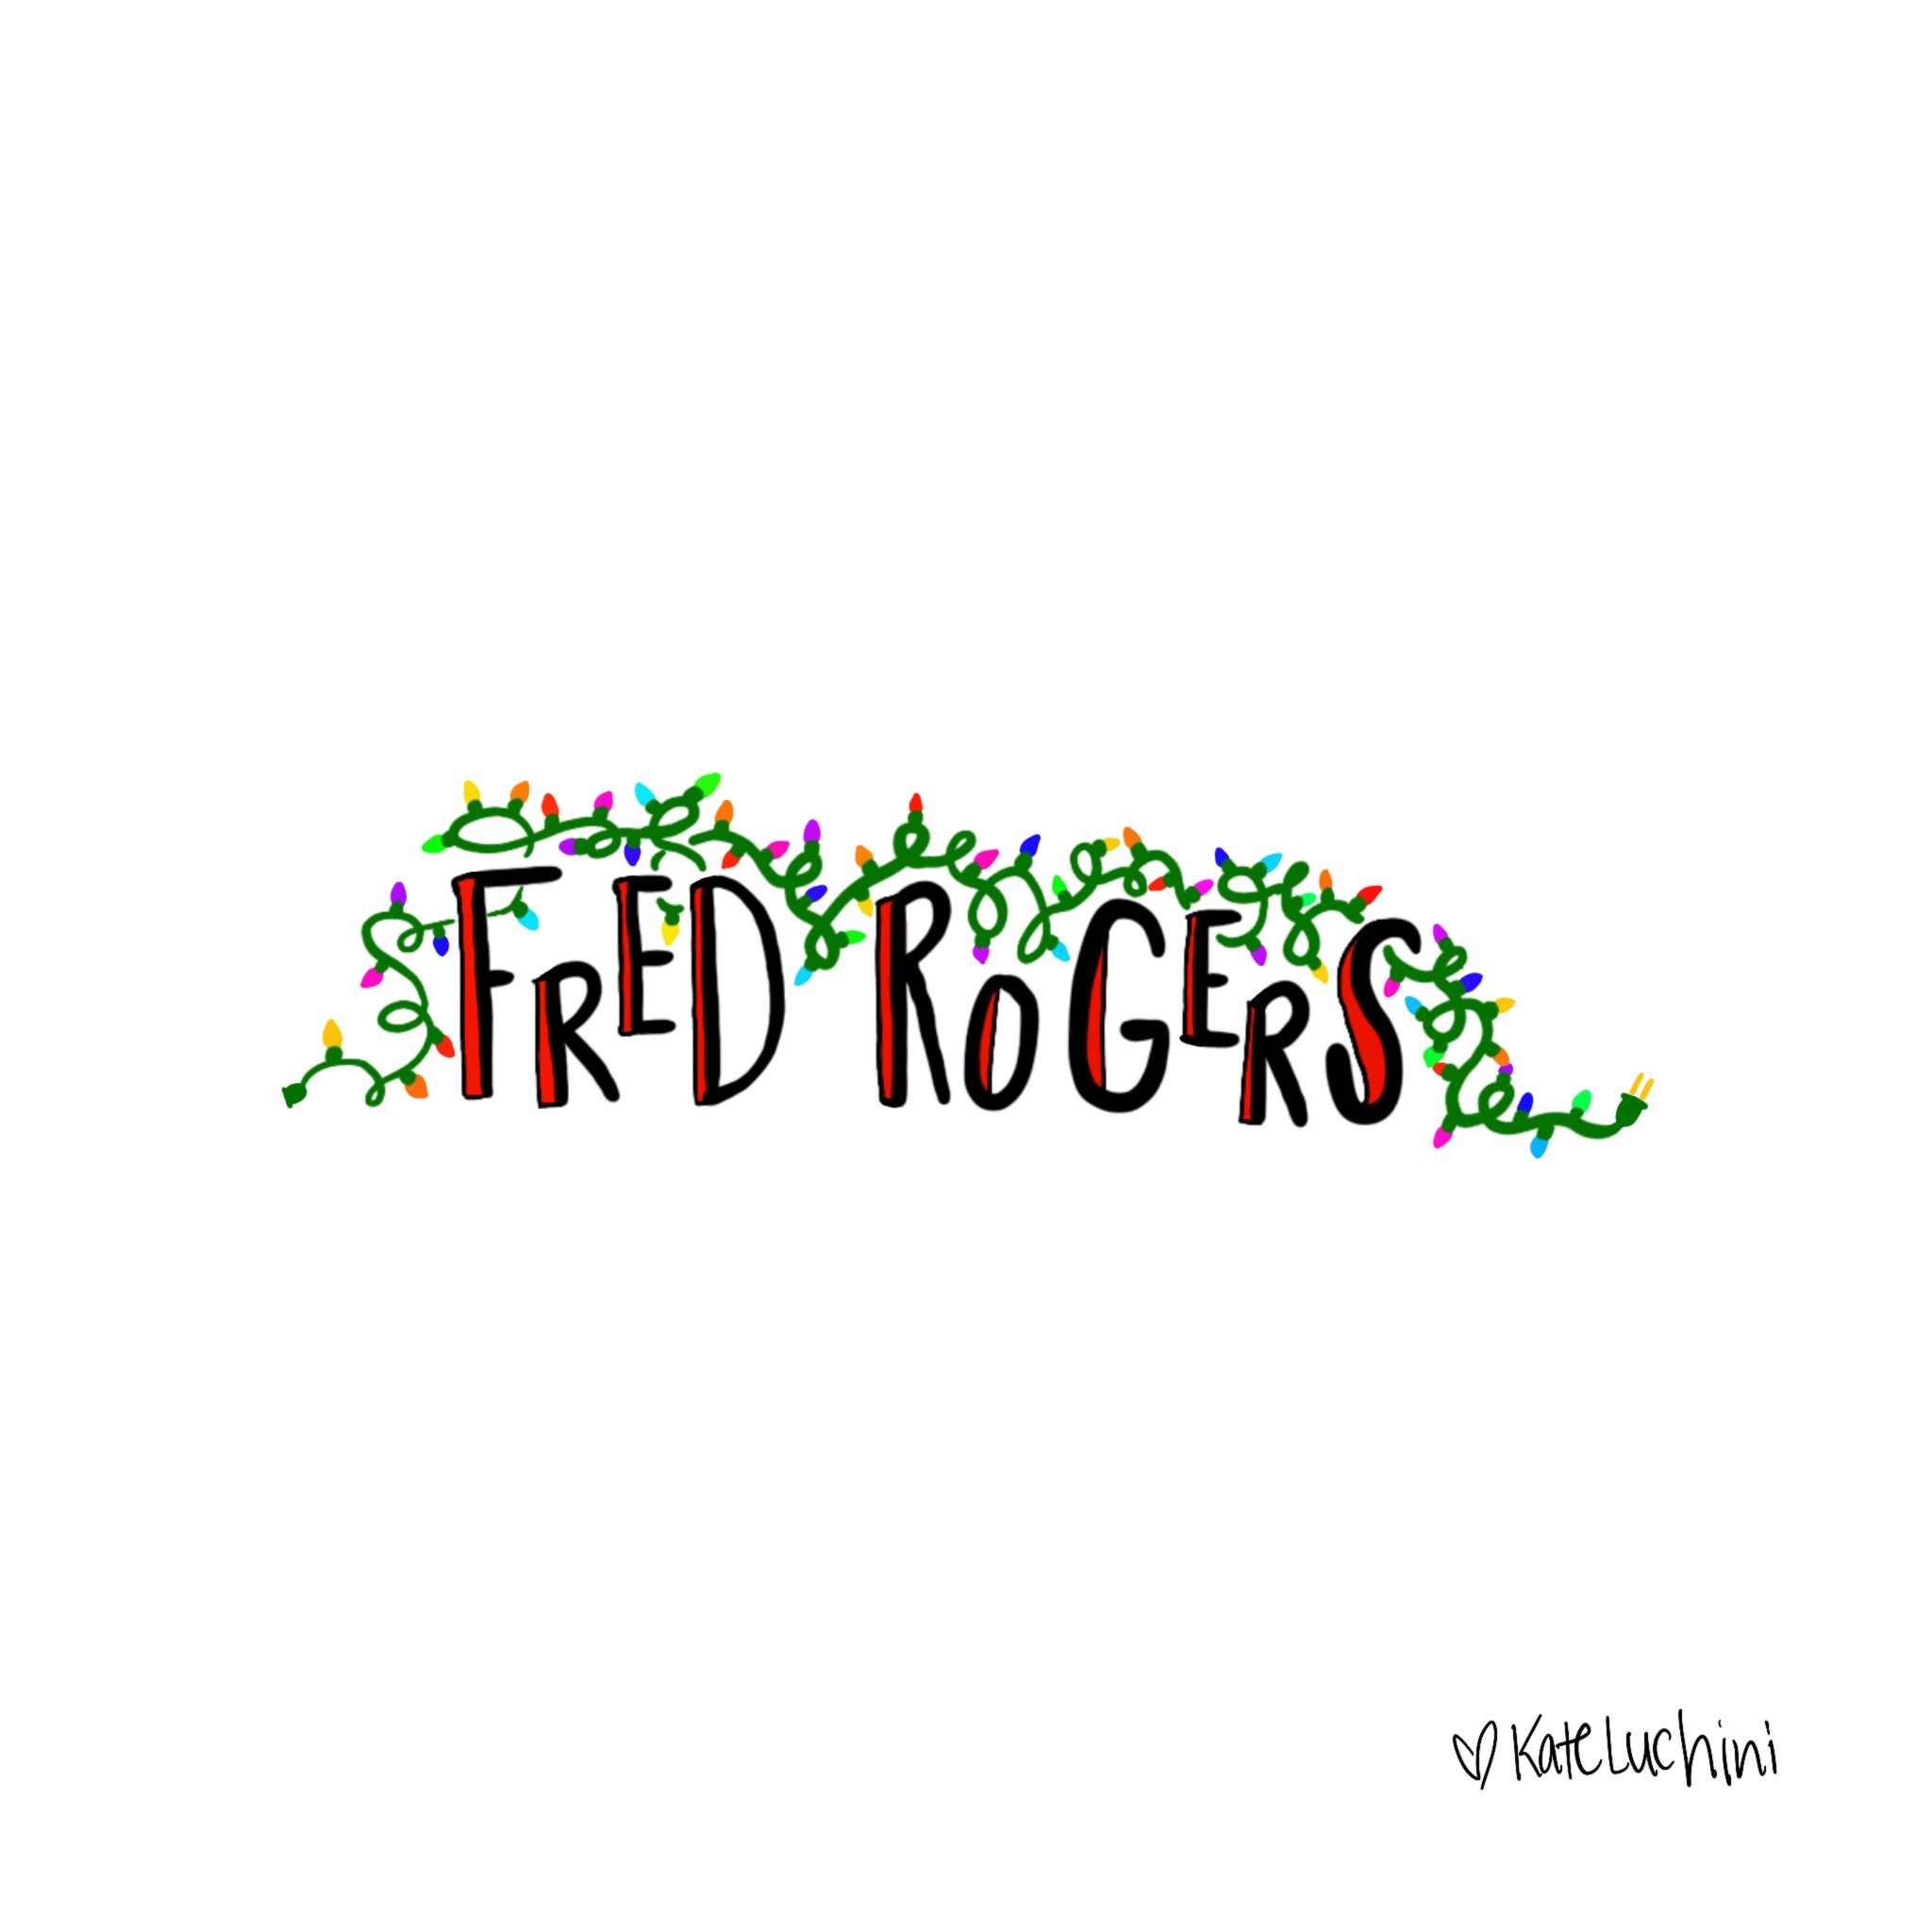 Fred Rogers Center On Twitter Because Sometimes You Re On A Conference Call It S The Holidays And You Can T Stop Thinking About Fredrogers Check Out What Our Simple Interactions Projects Assistant Kate Luchini Doodled